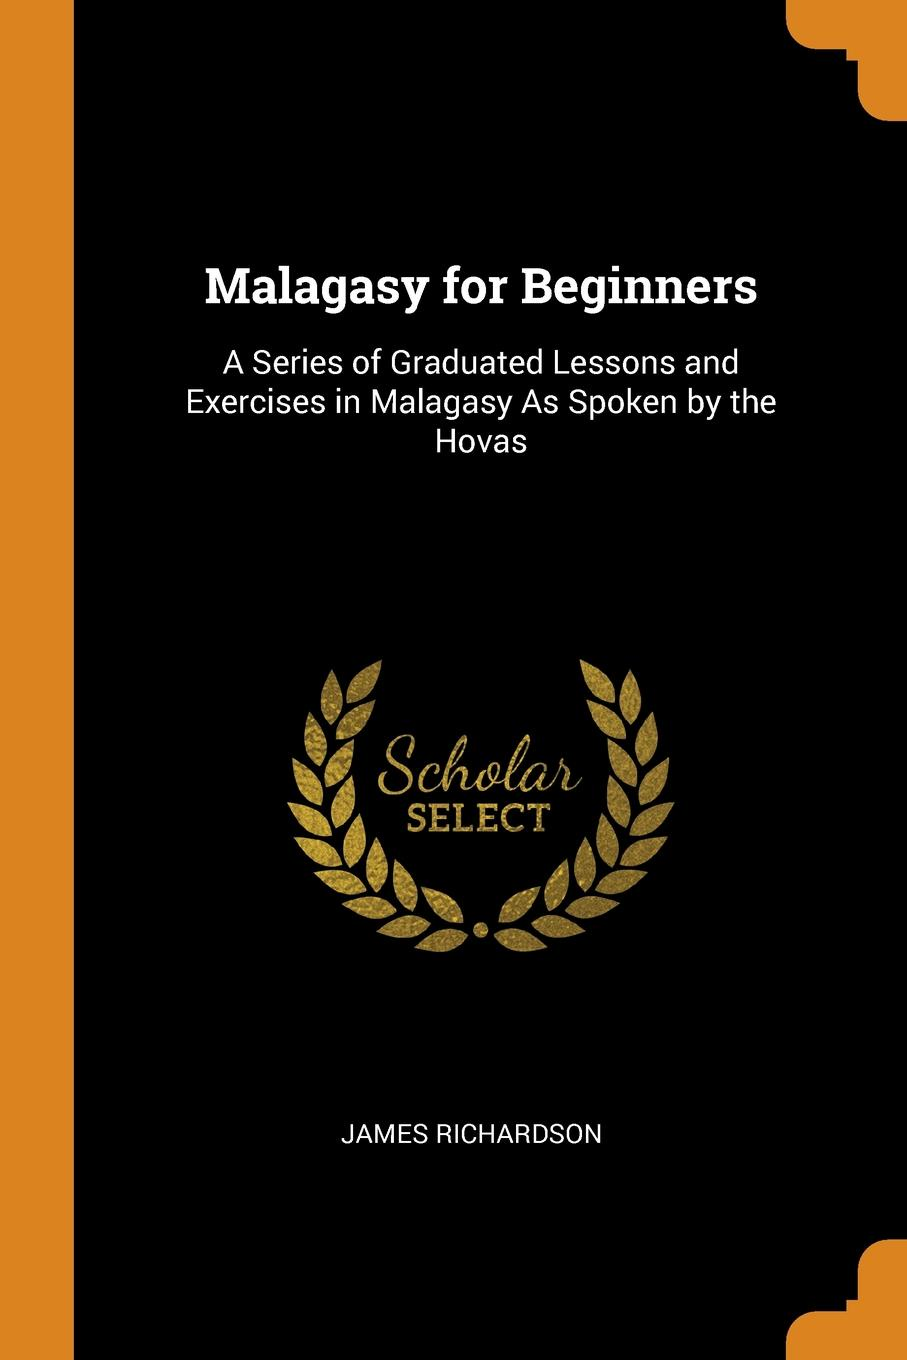 Malagasy for Beginners. A Series of Graduated Lessons and Exercises in Malagasy As Spoken by the Hovas